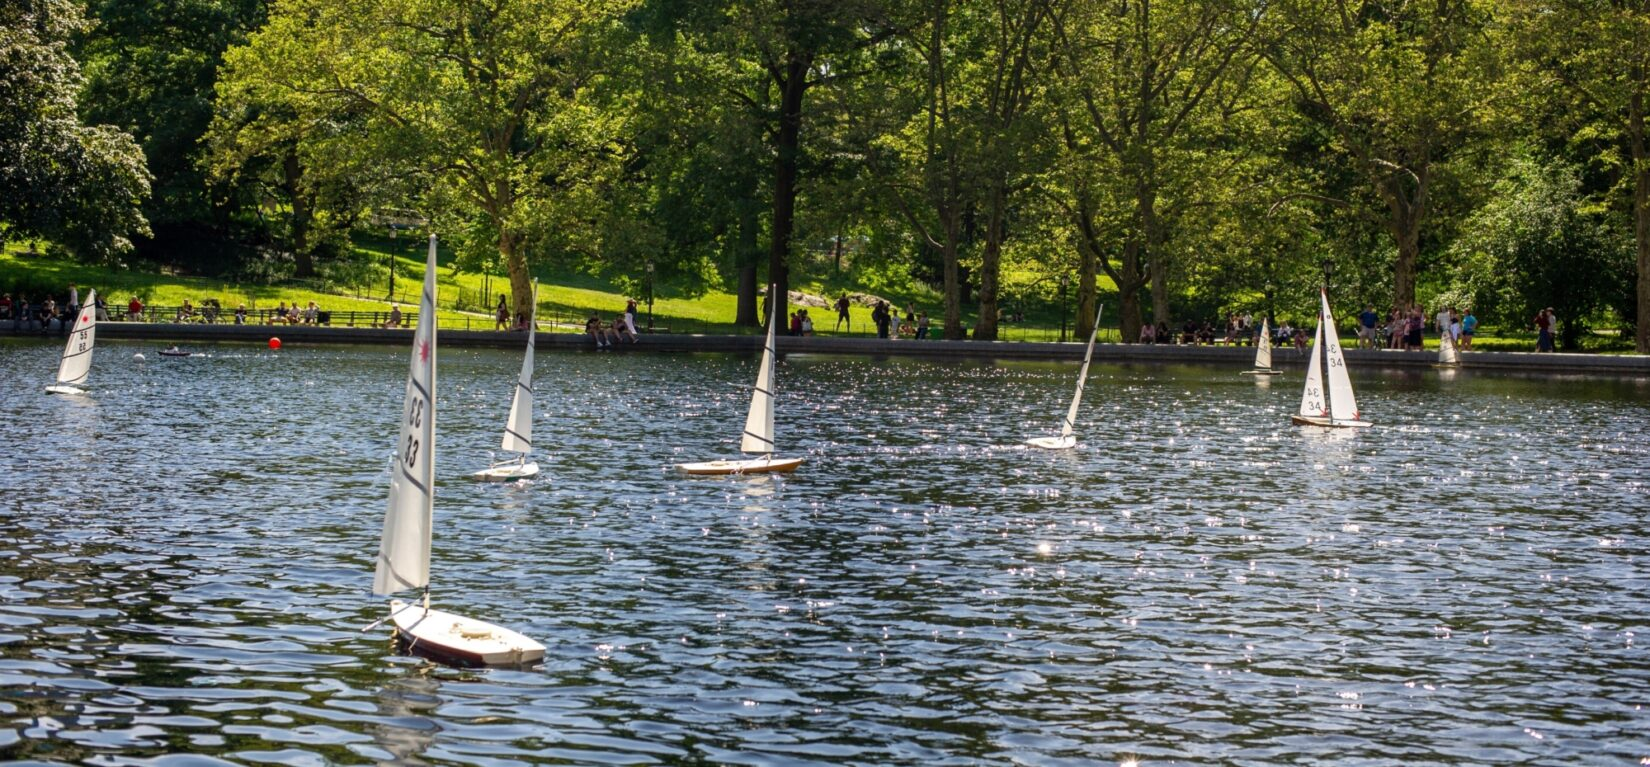 Model sailboats dance on the surface of Conservatory Water